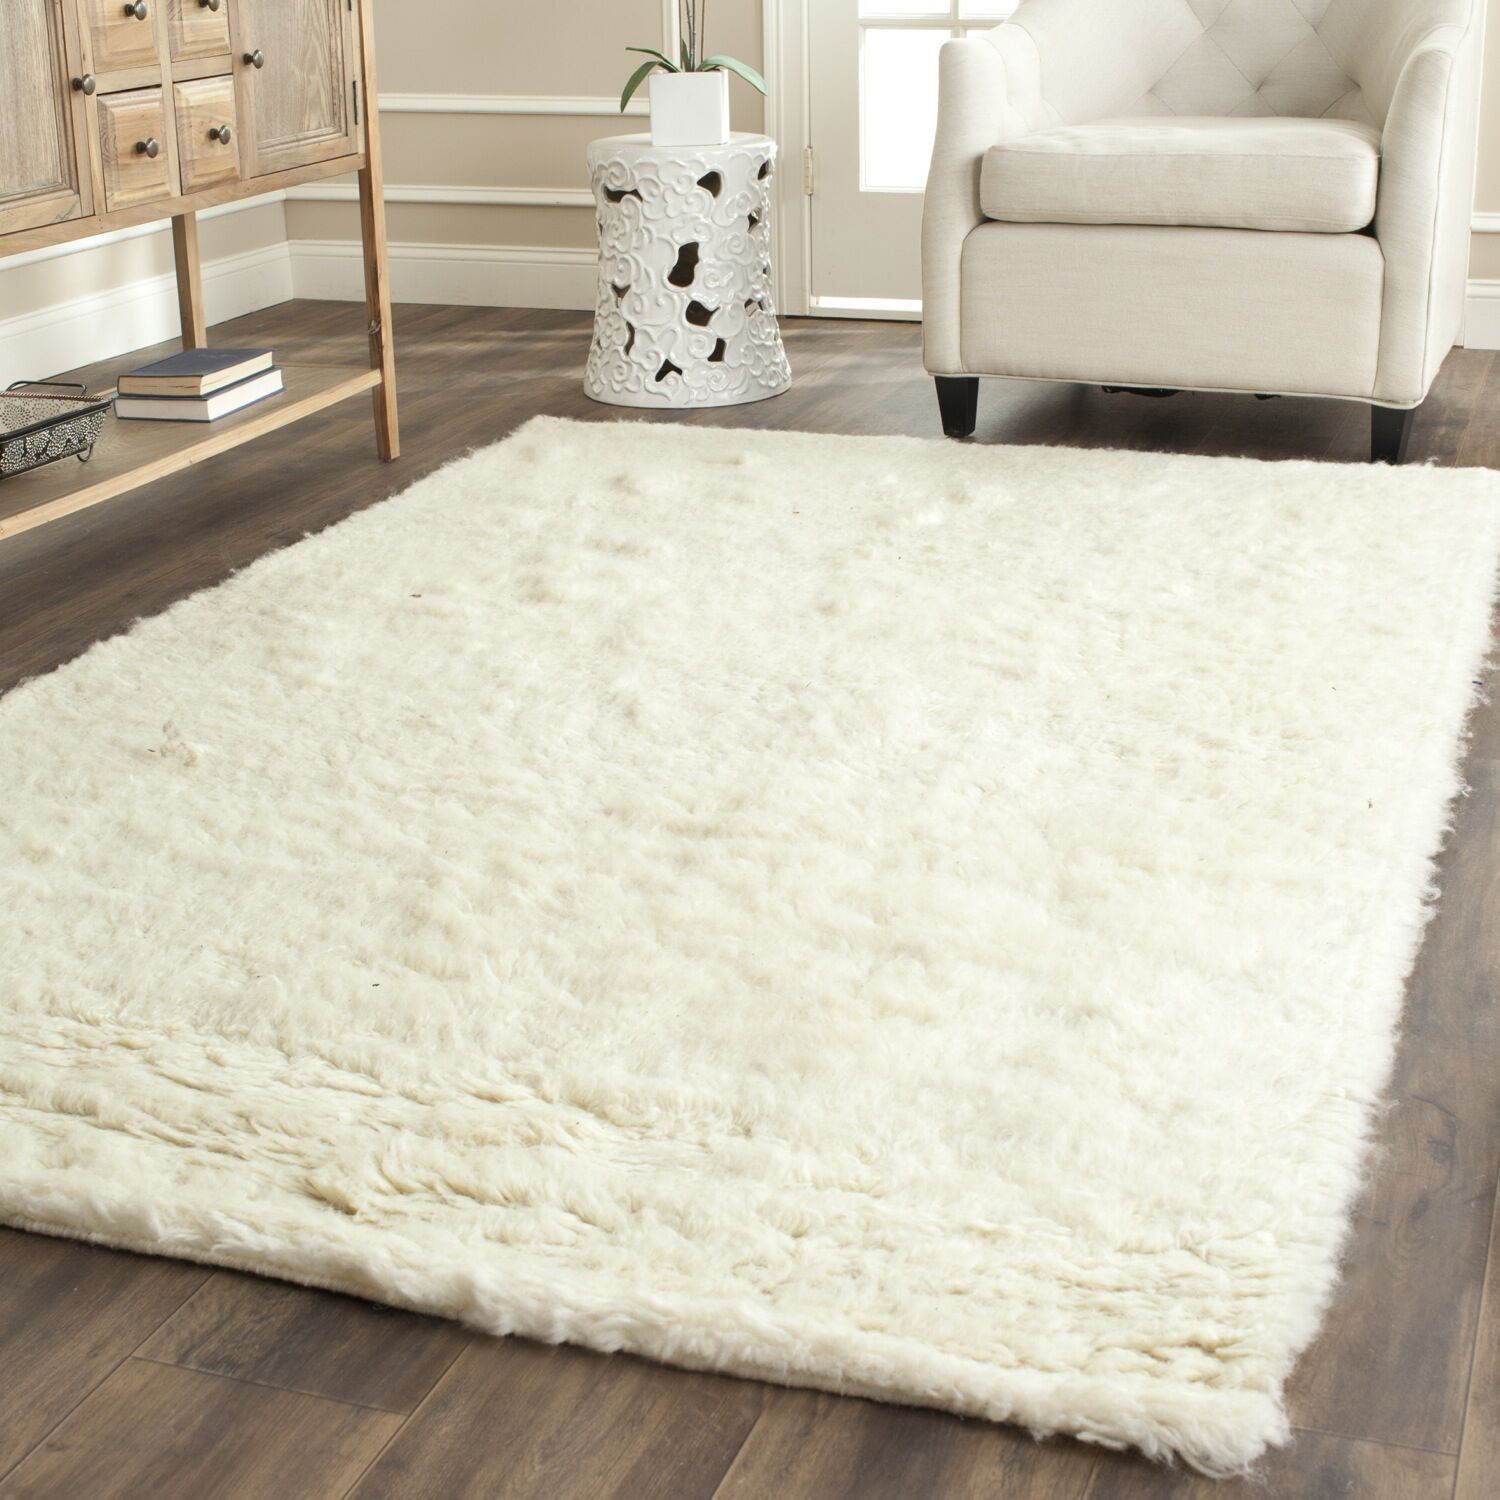 Flokati Hand-Tufted Wool Ivory Area Rug Rug Size: Rectangle 9' x 12'